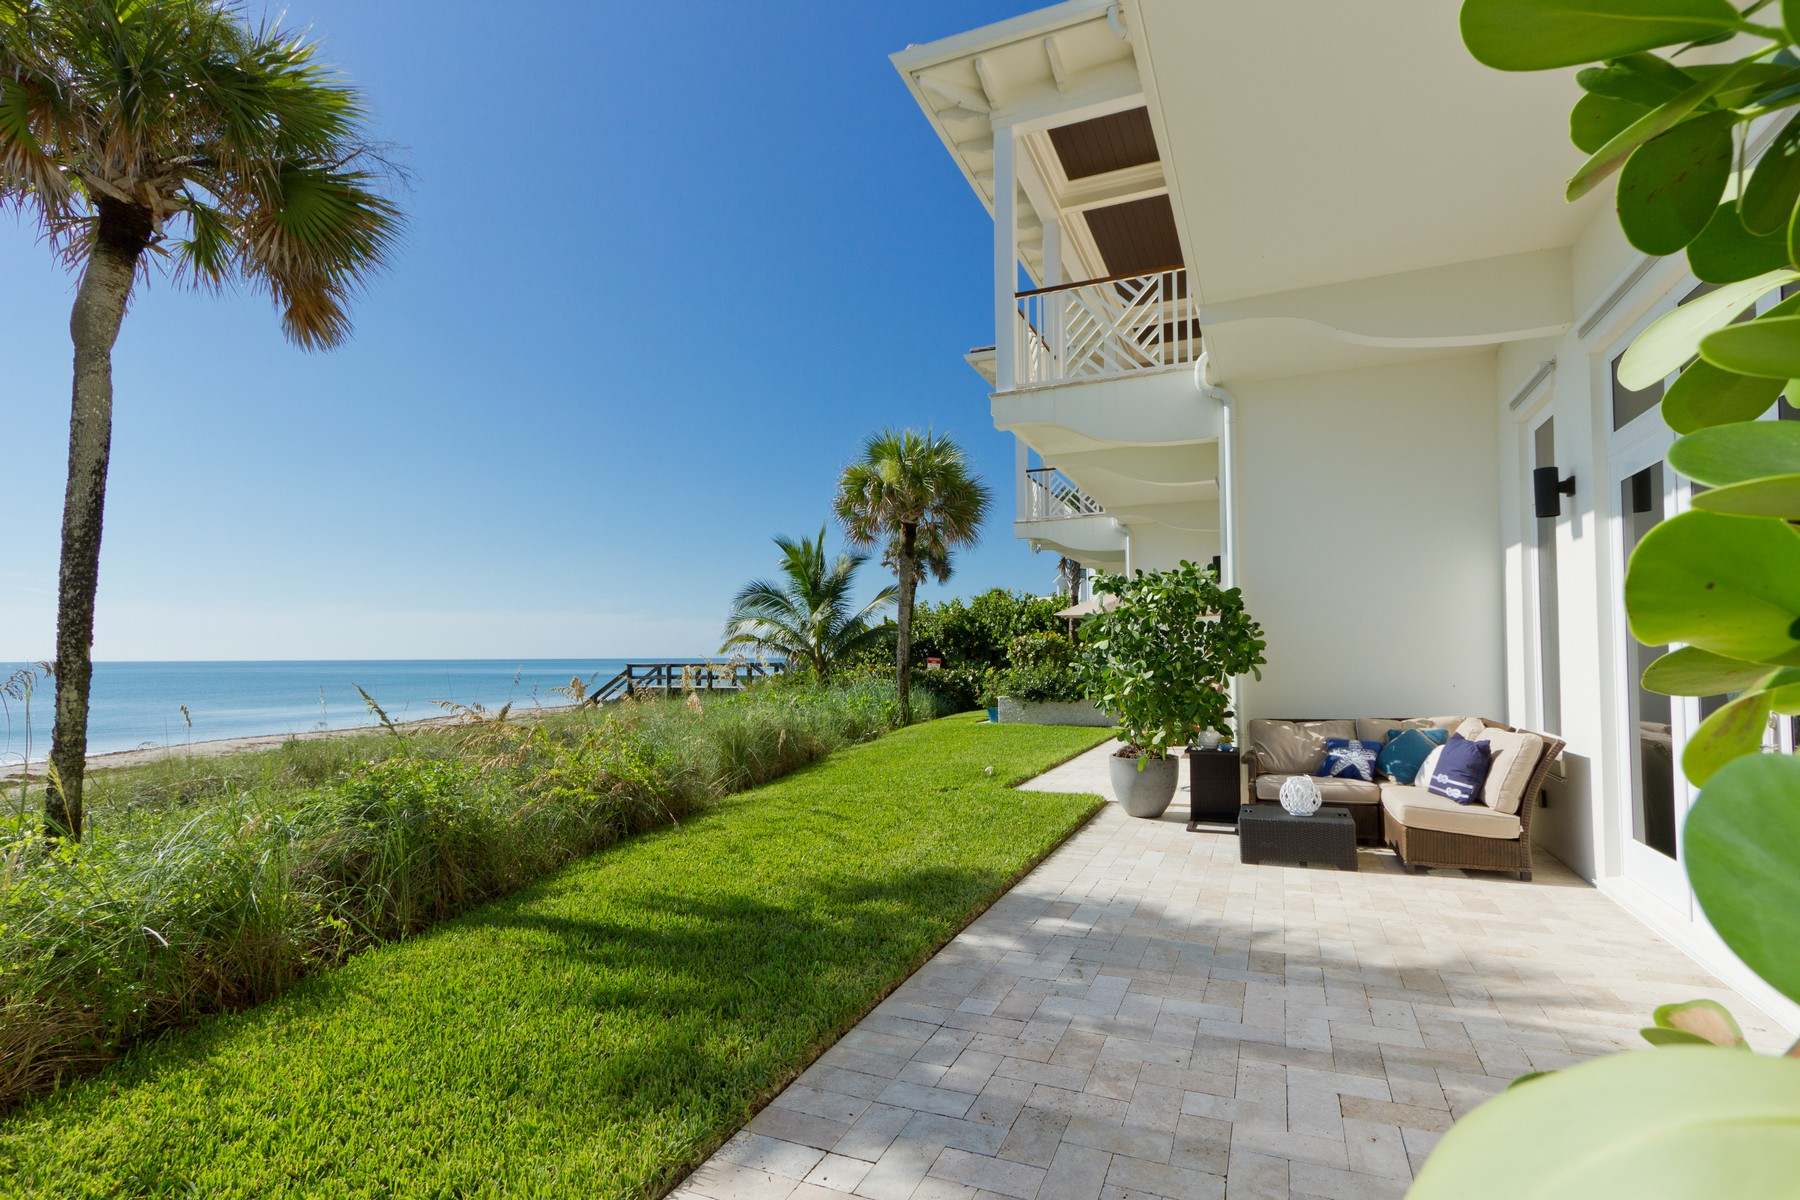 Property for Sale at Dream Beach Home 1025 Gayfeather Lane Vero Beach, Florida 32963 United States